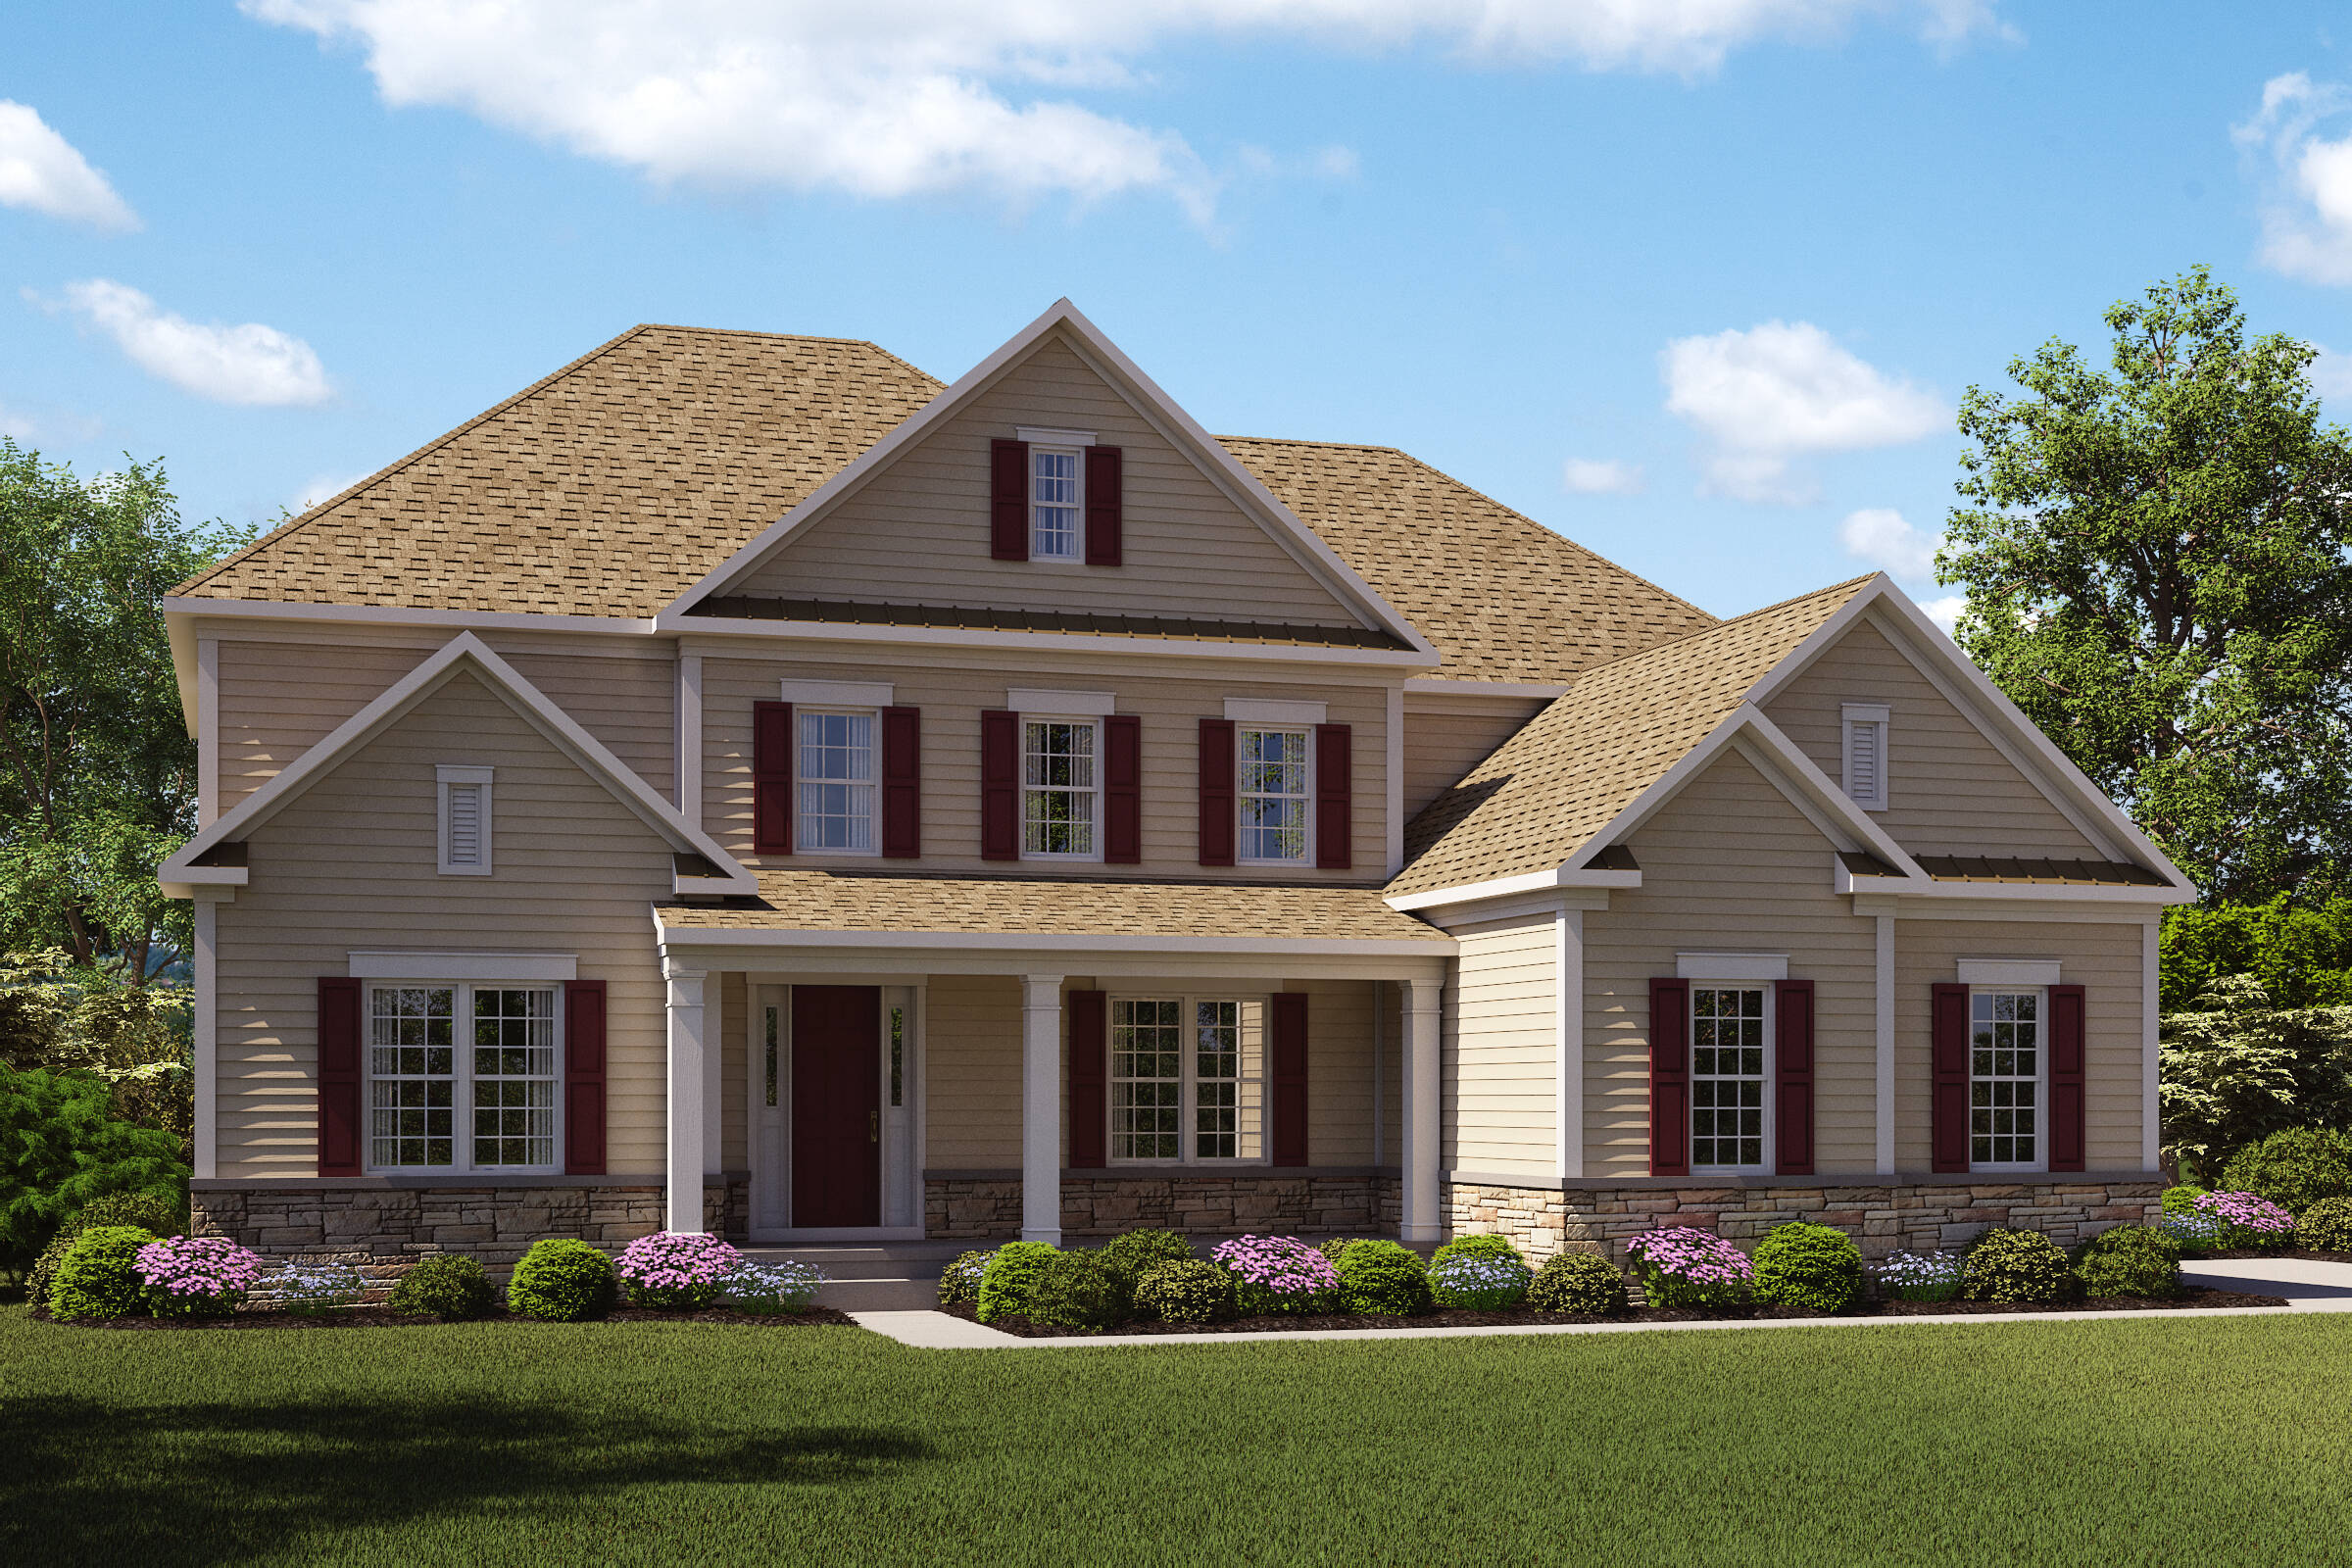 Monet-H-Stone Watertable New Homes Middletown NJ